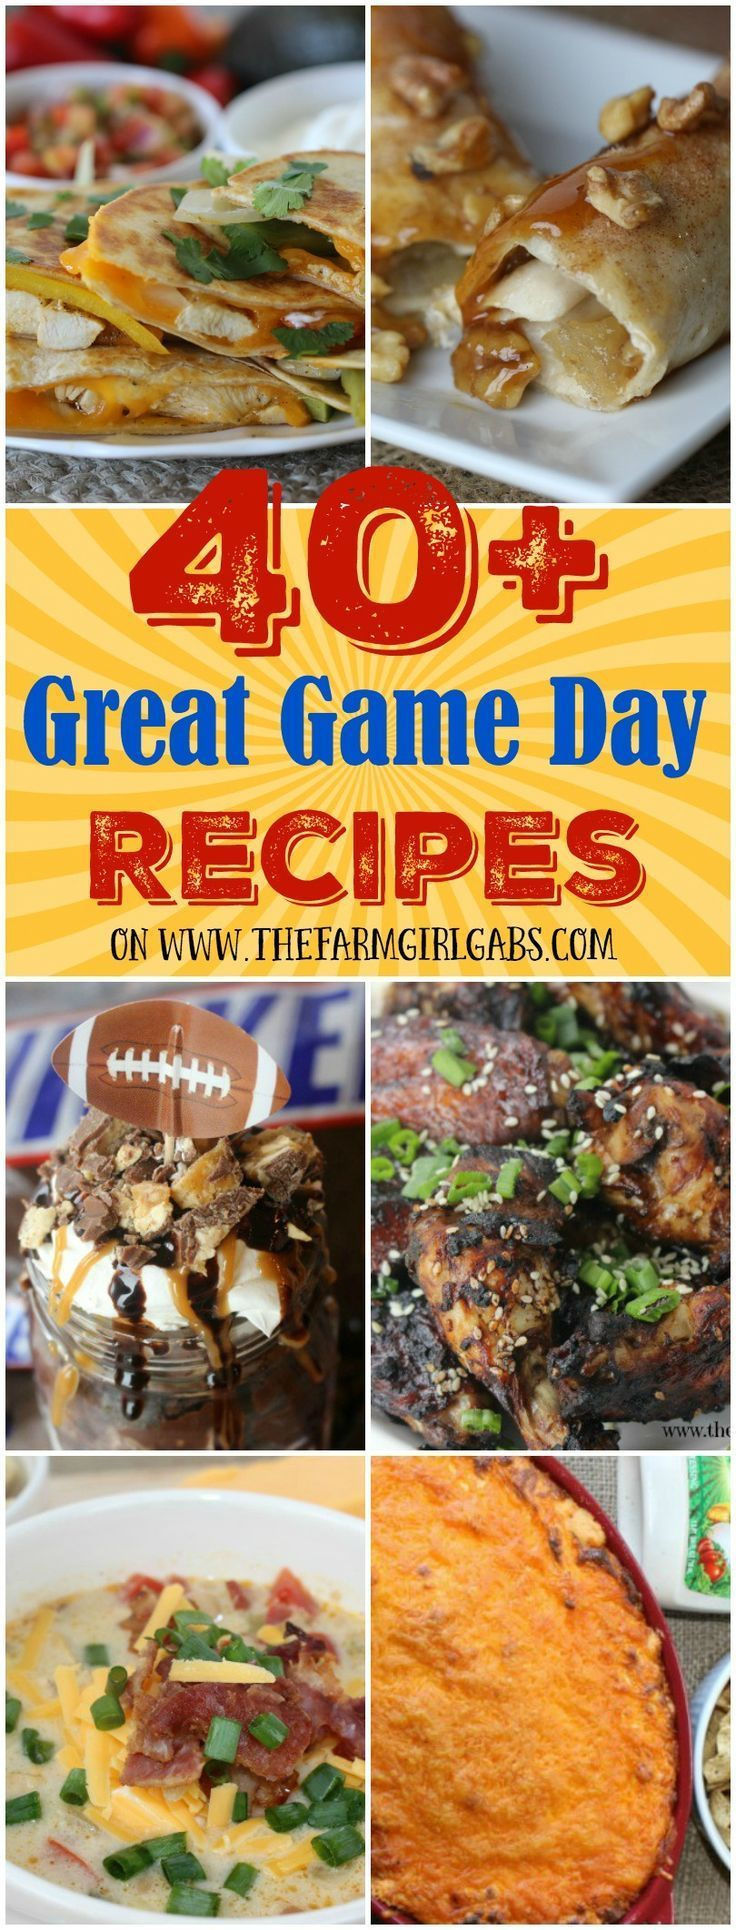 So many awesome recipes here, can't wait to try these out for Monday Night Football! 40+ Great game day recipes for your next football party.